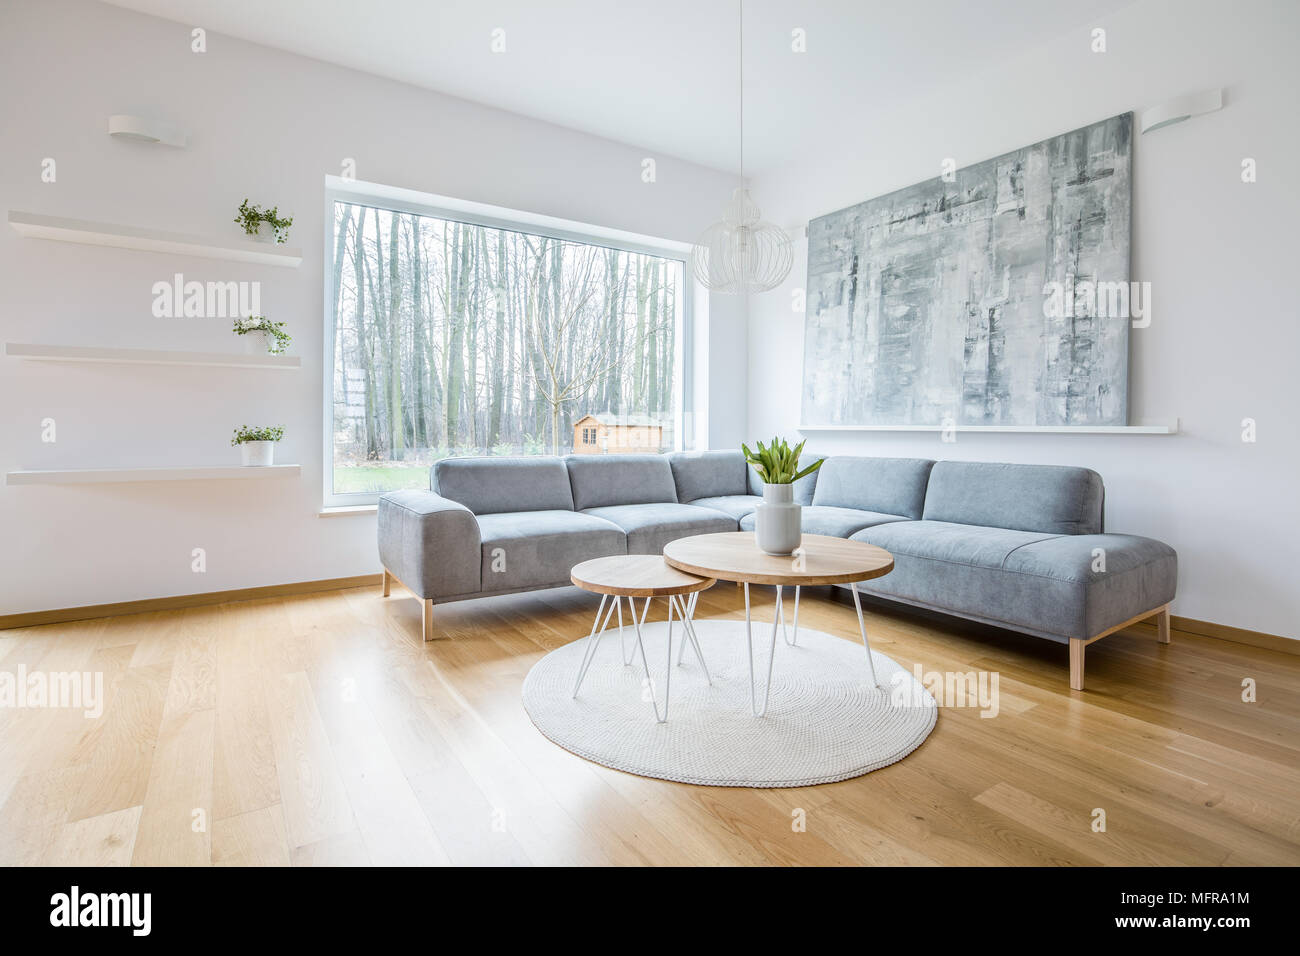 Two Hairpin Tables Placed On A Round Rug In White Sitting Room Interior  With Grey Corner Couch, Abstract Painting, Big Window And Plants On Shelves